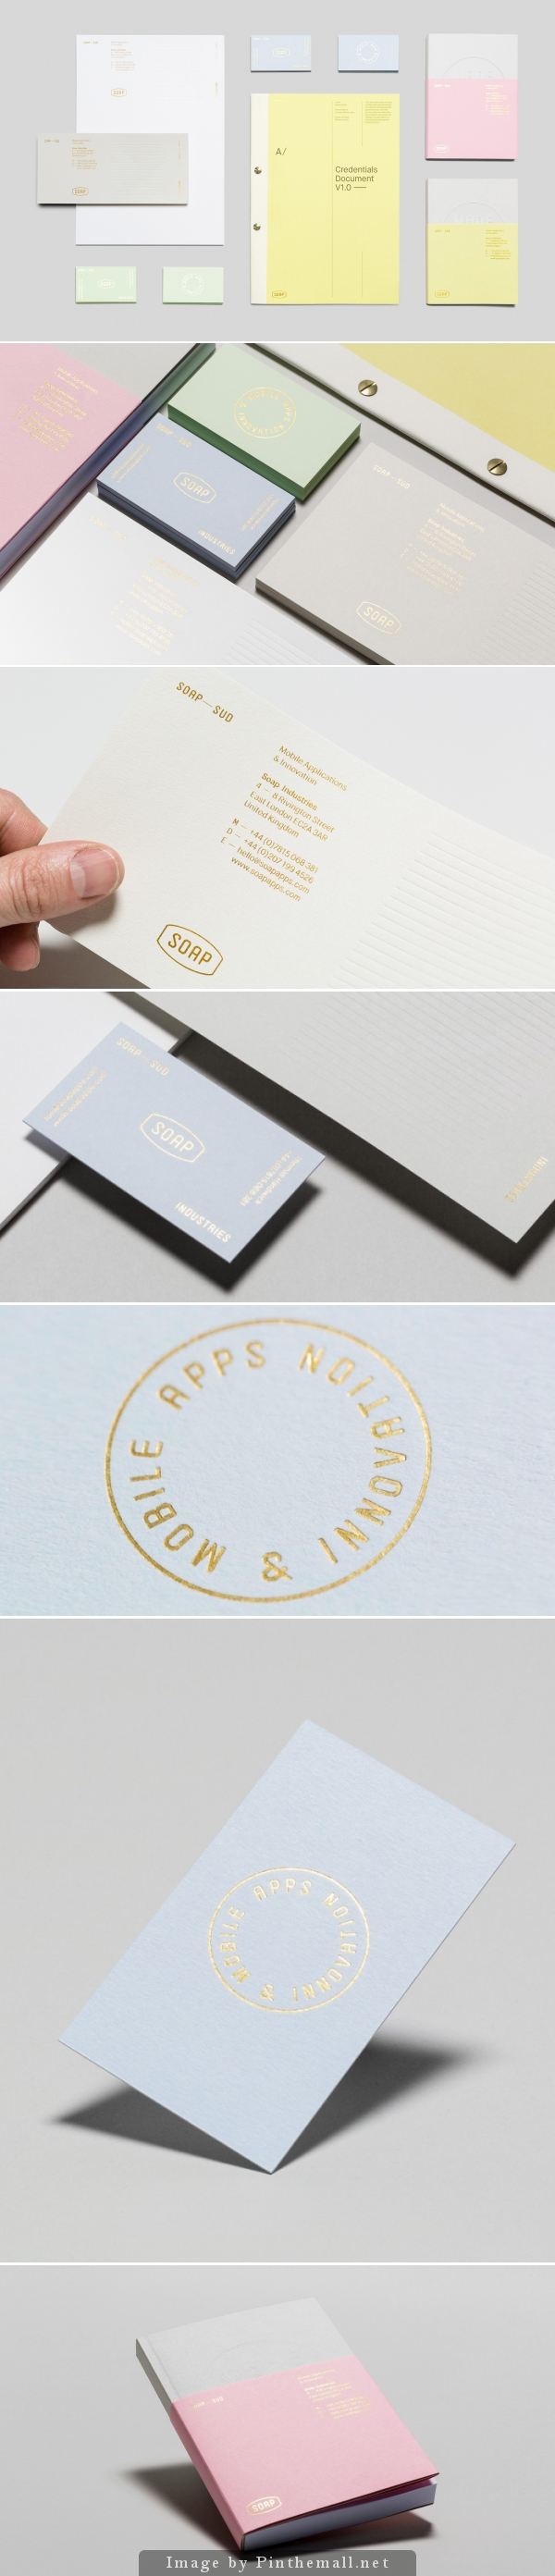 Corporate identity branding stationary minimal graphic logo design letterpress cold gold foil business card letterhead wcc pastel colors